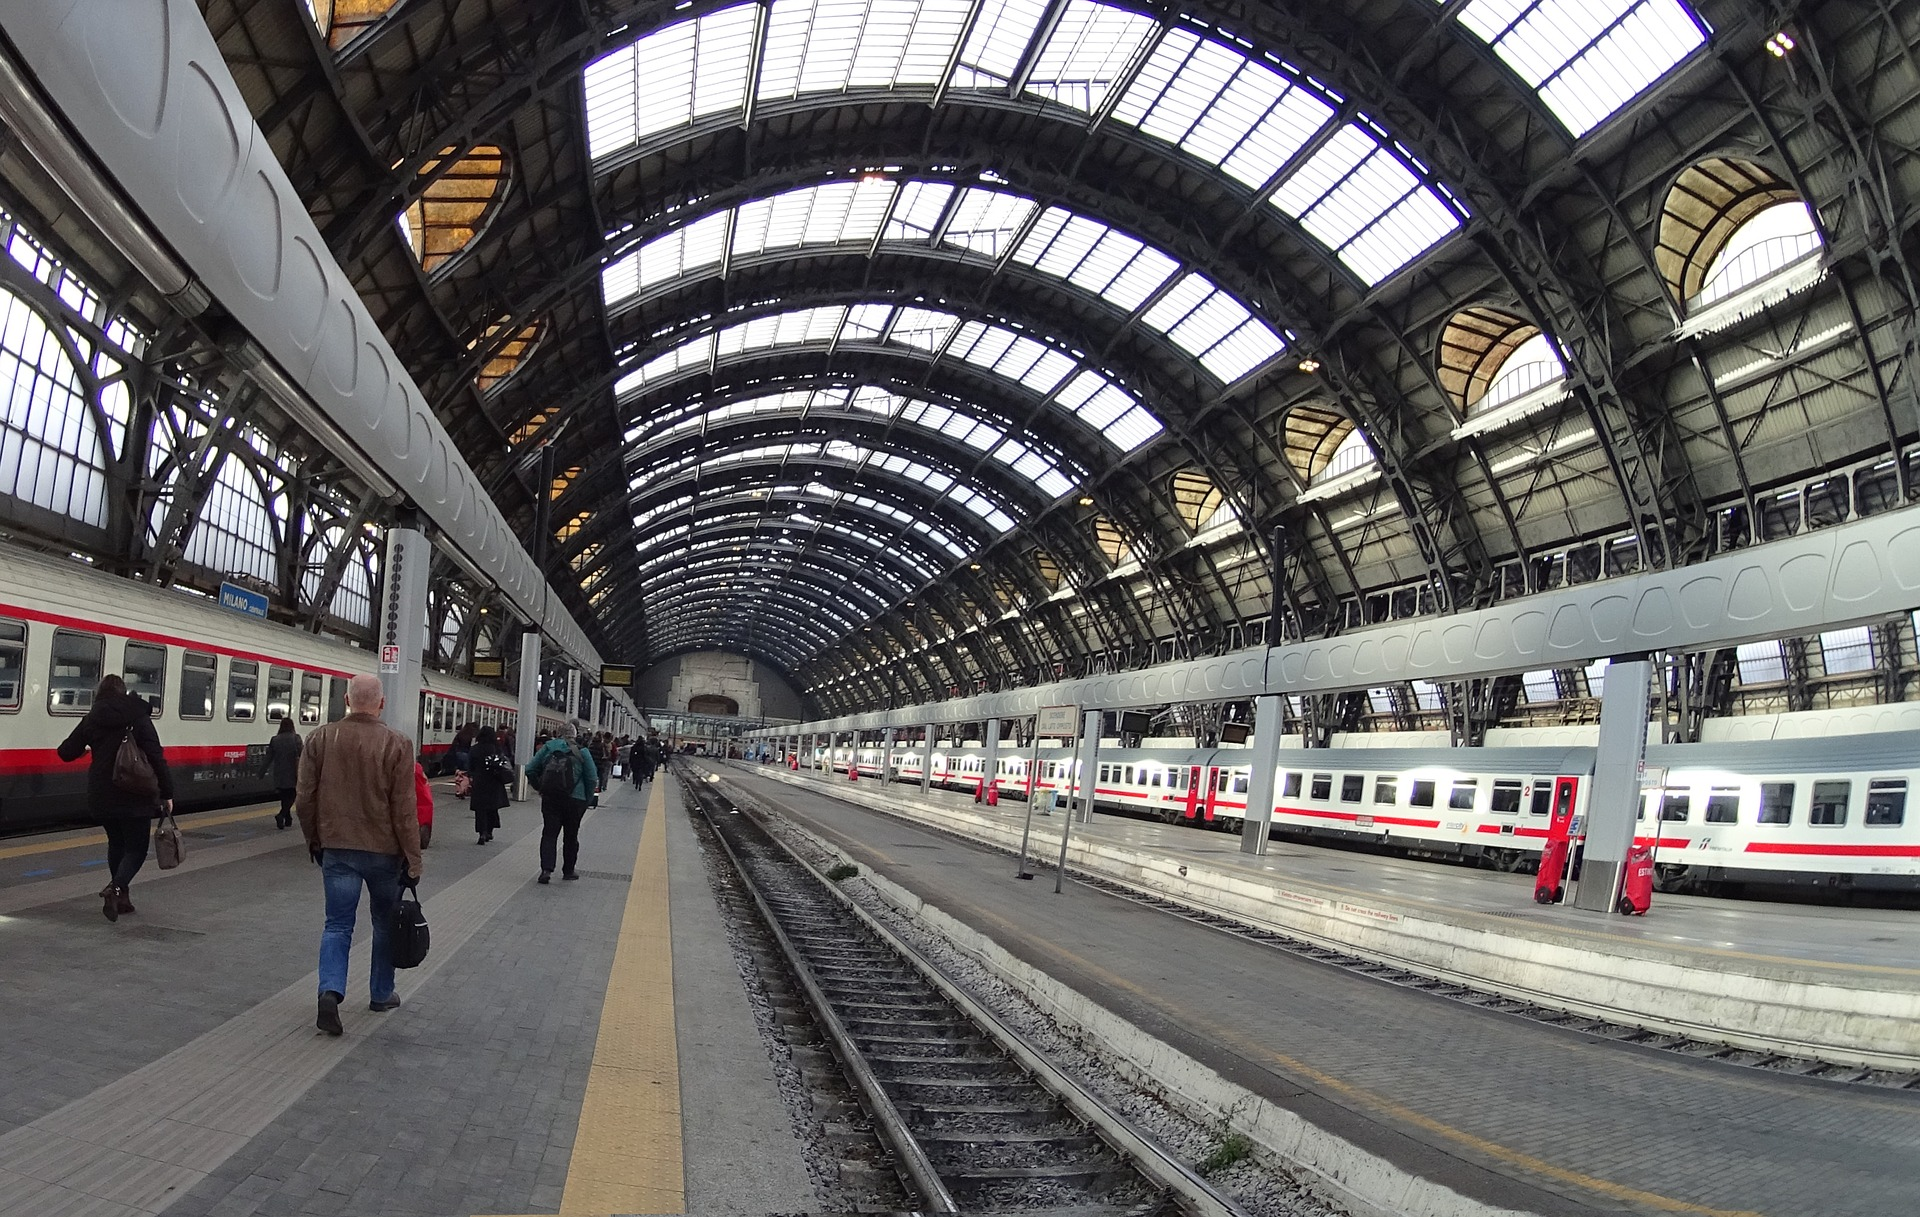 ec462f35e9b8 City Guide Milan - everything you need to know about Milan